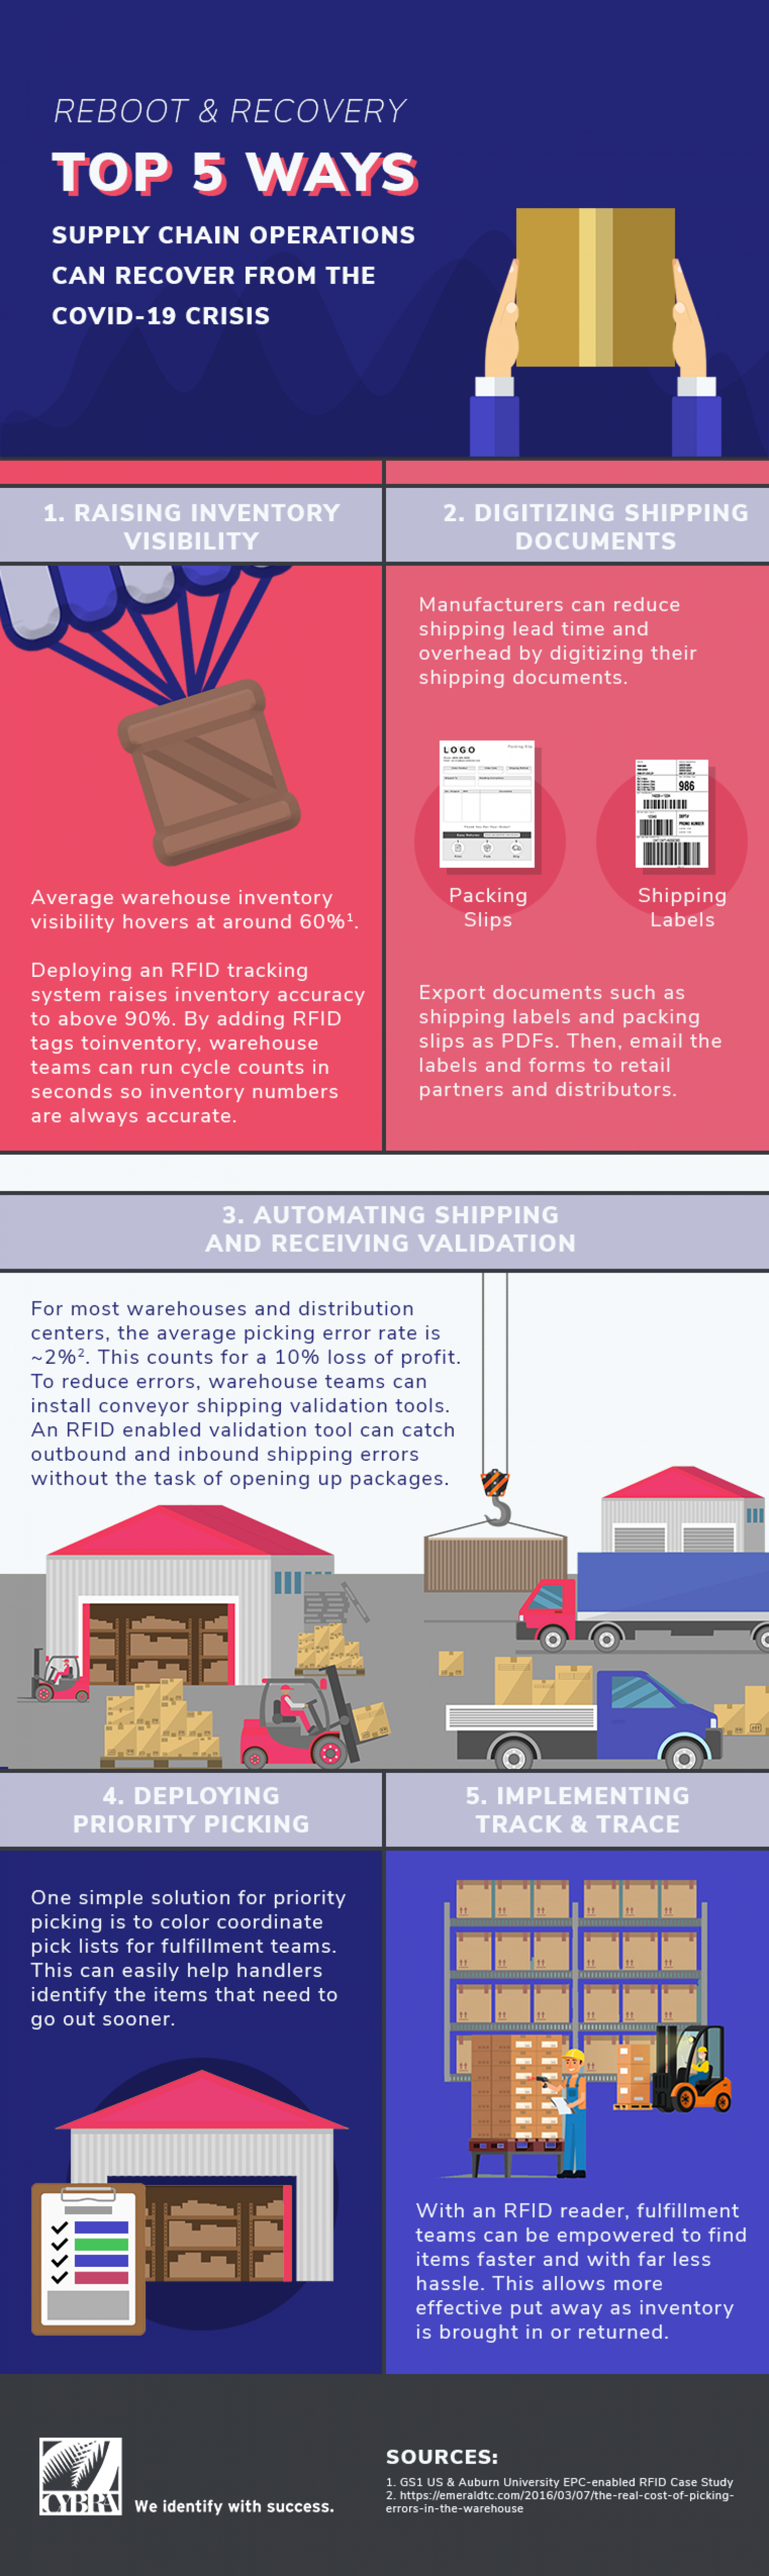 5 Ways Supply Chains Can Recover from the COVID-19 Crisis Infographic